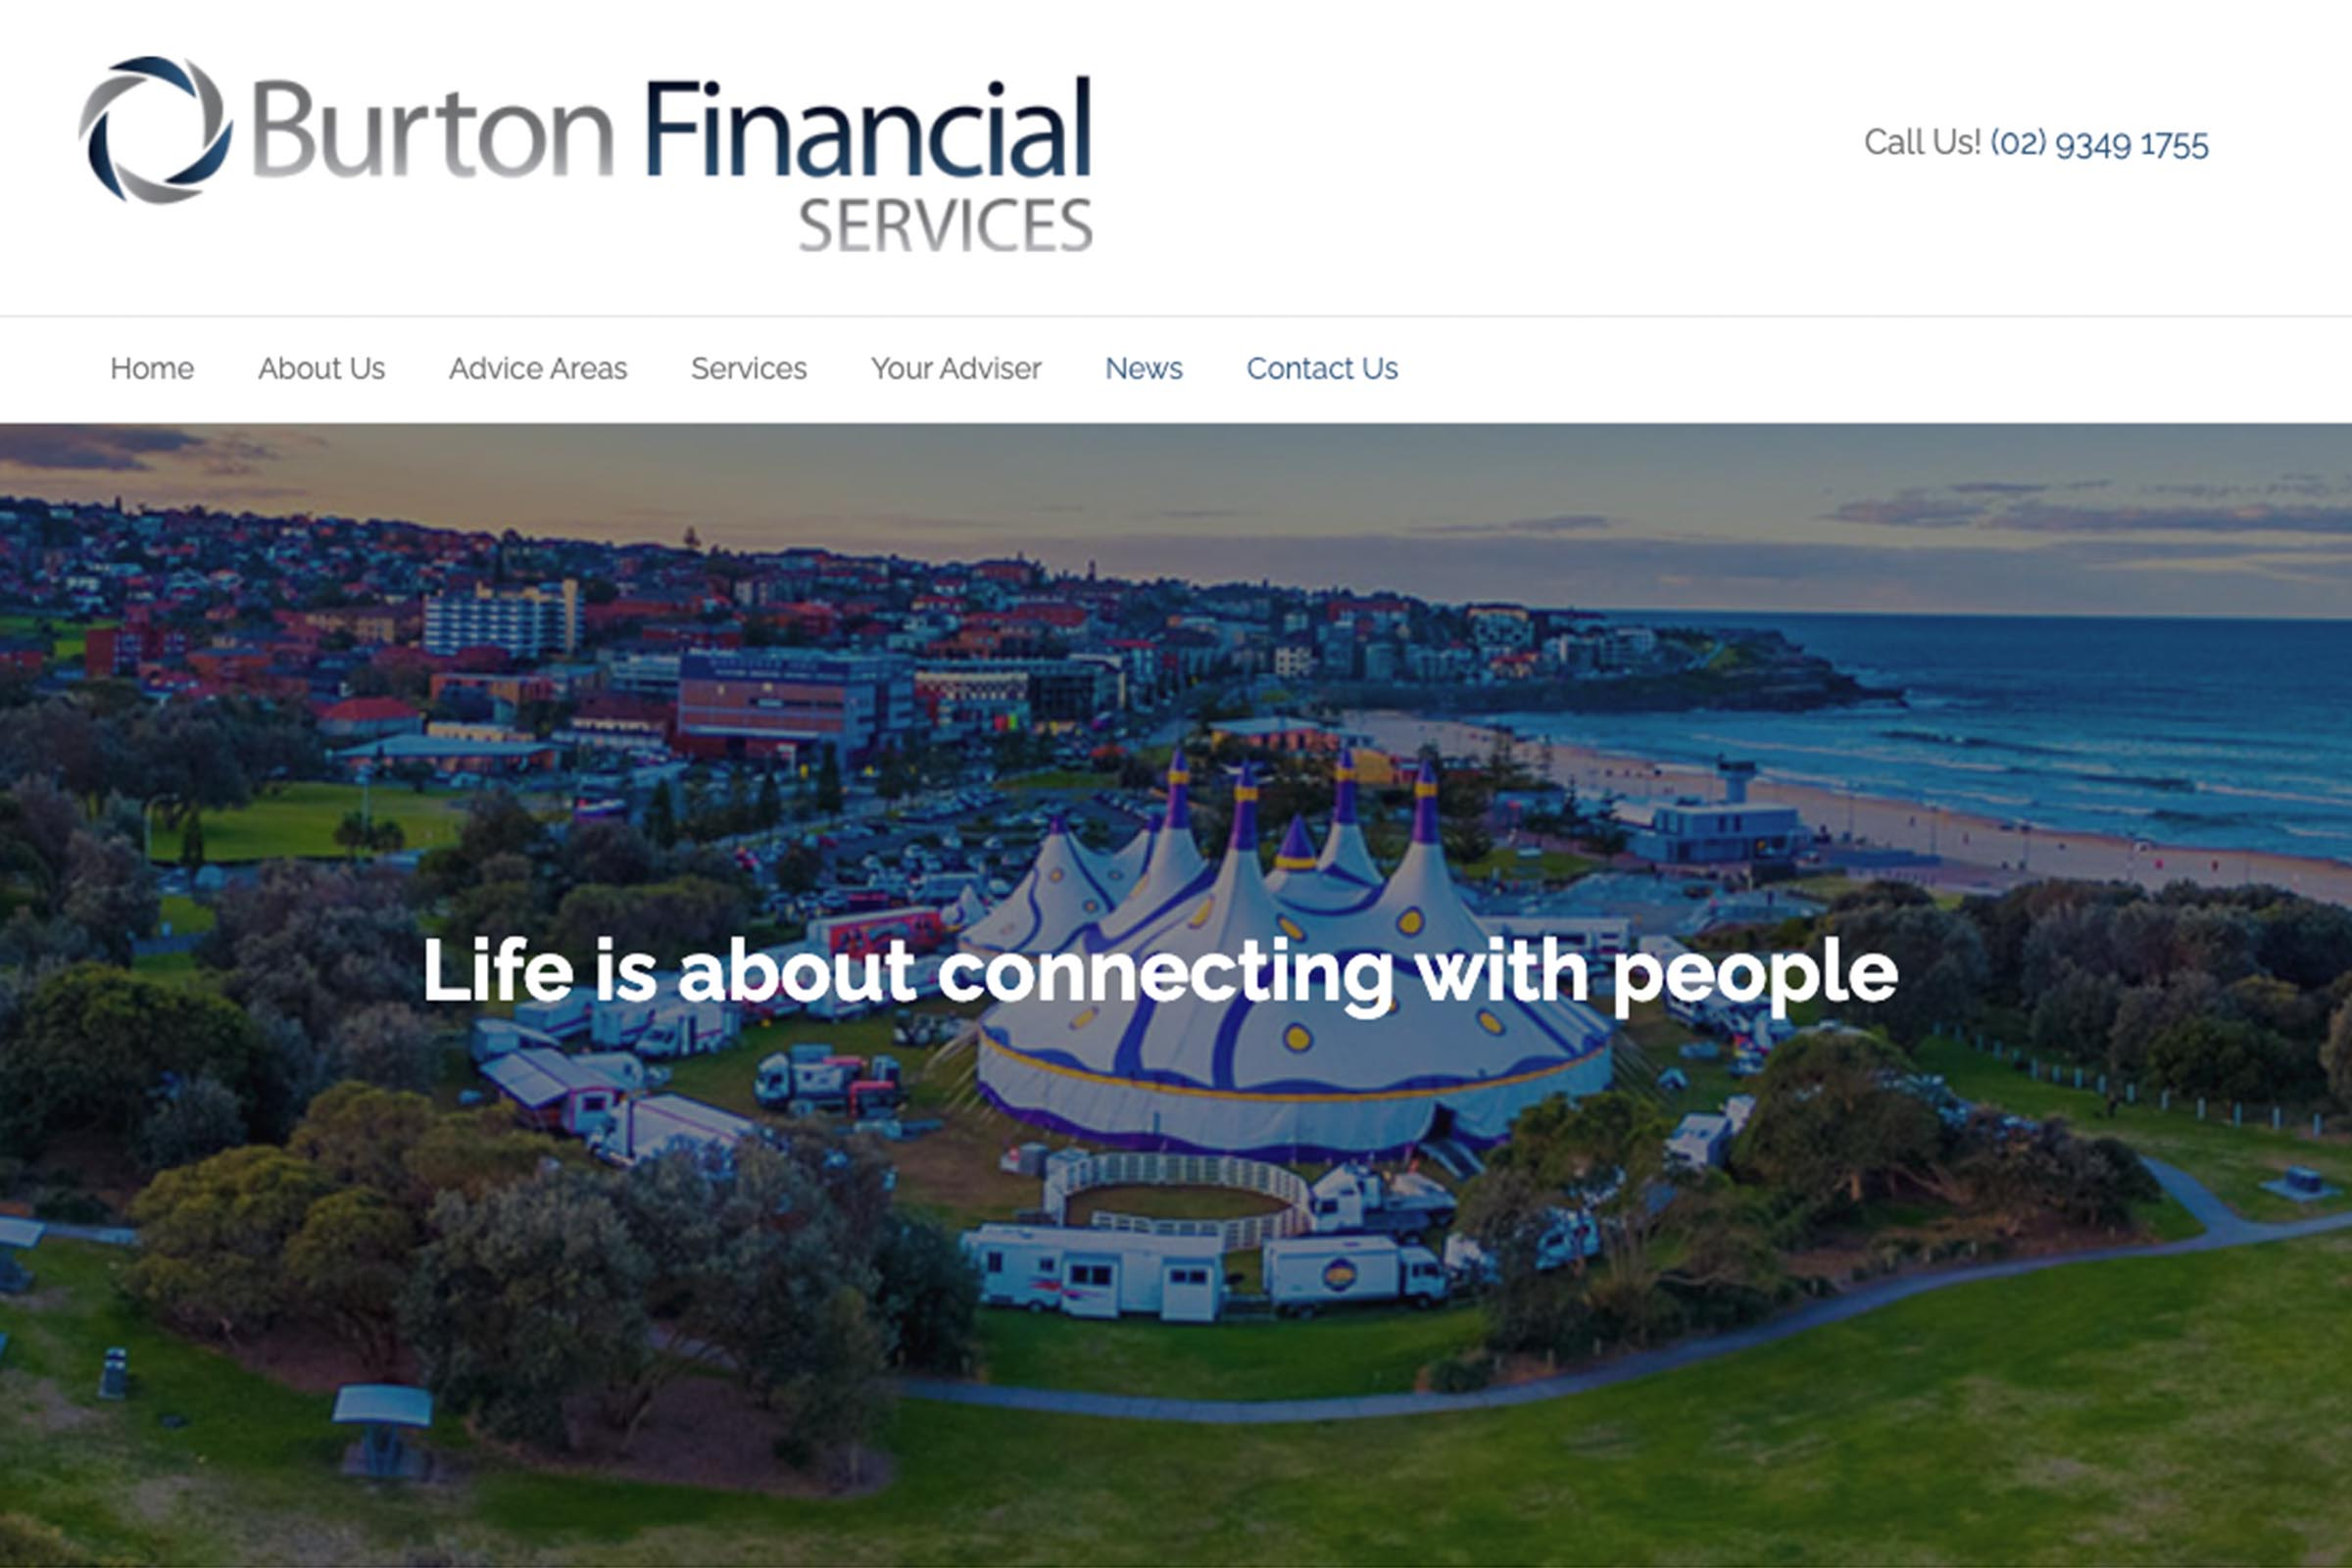 BURTON FINANCIAL